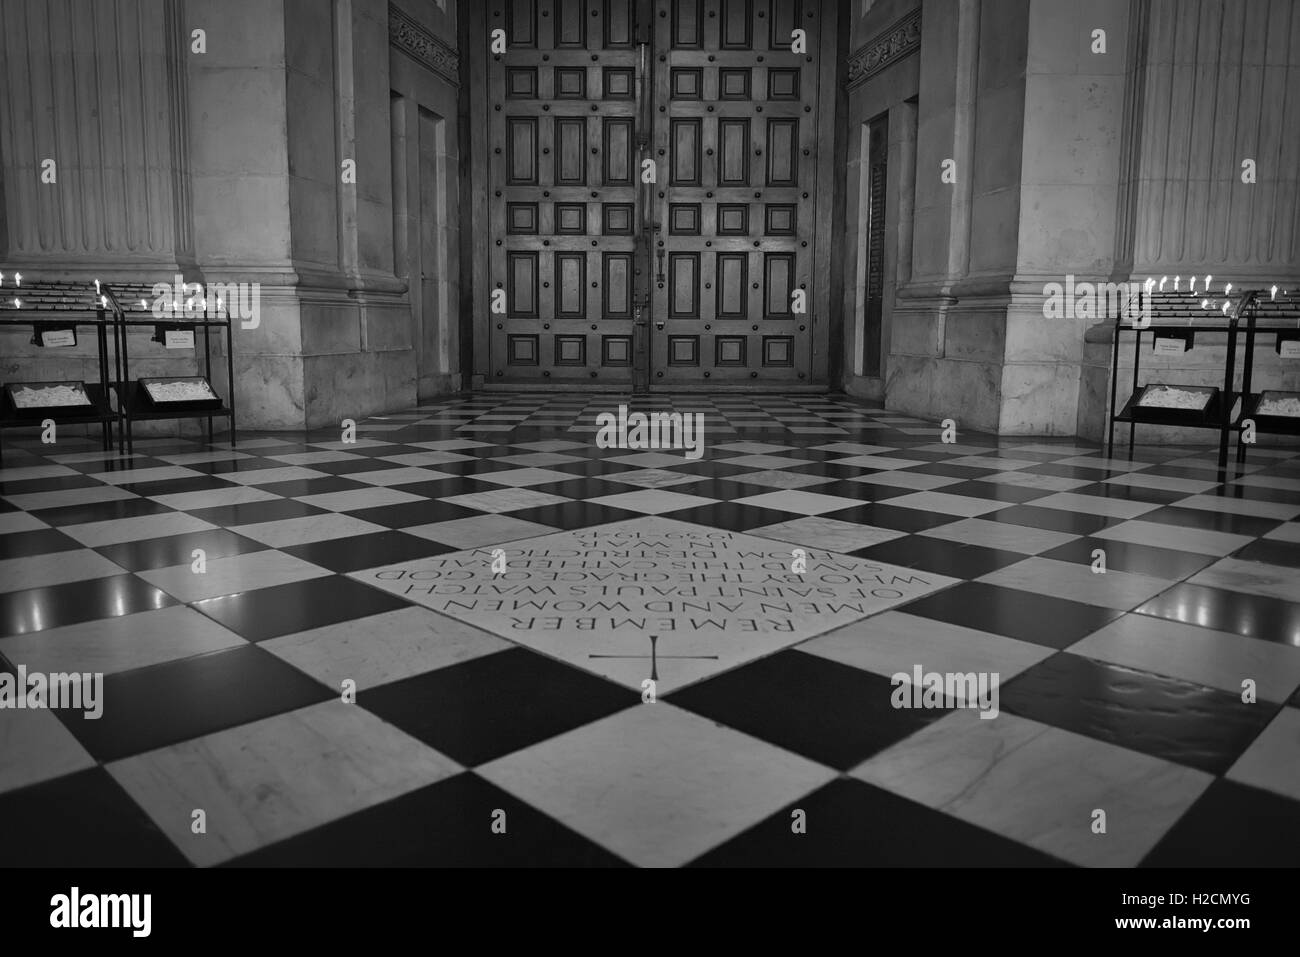 Wooden Doors Of St Pauls Cathedral And Square Floor Tiles In Stock